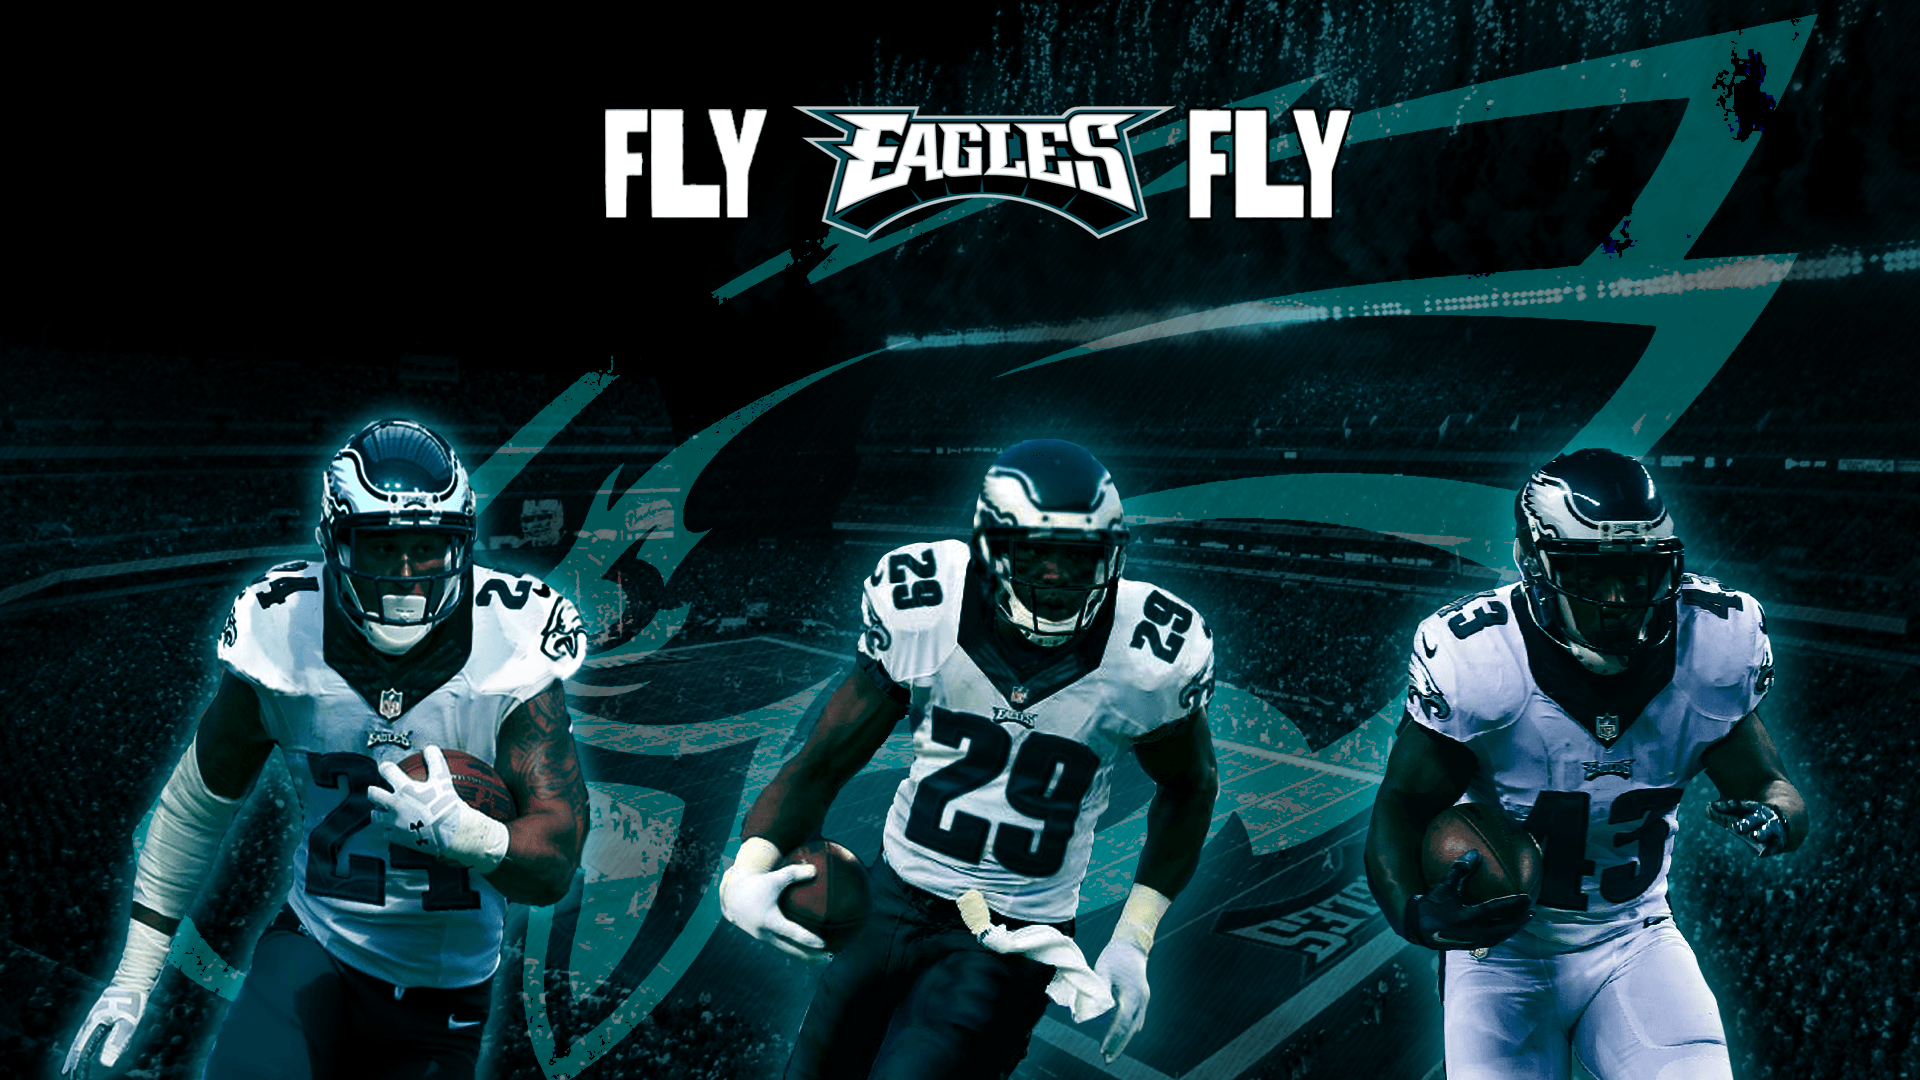 In excitement over our new backfield, I've created a new wallpaper ...